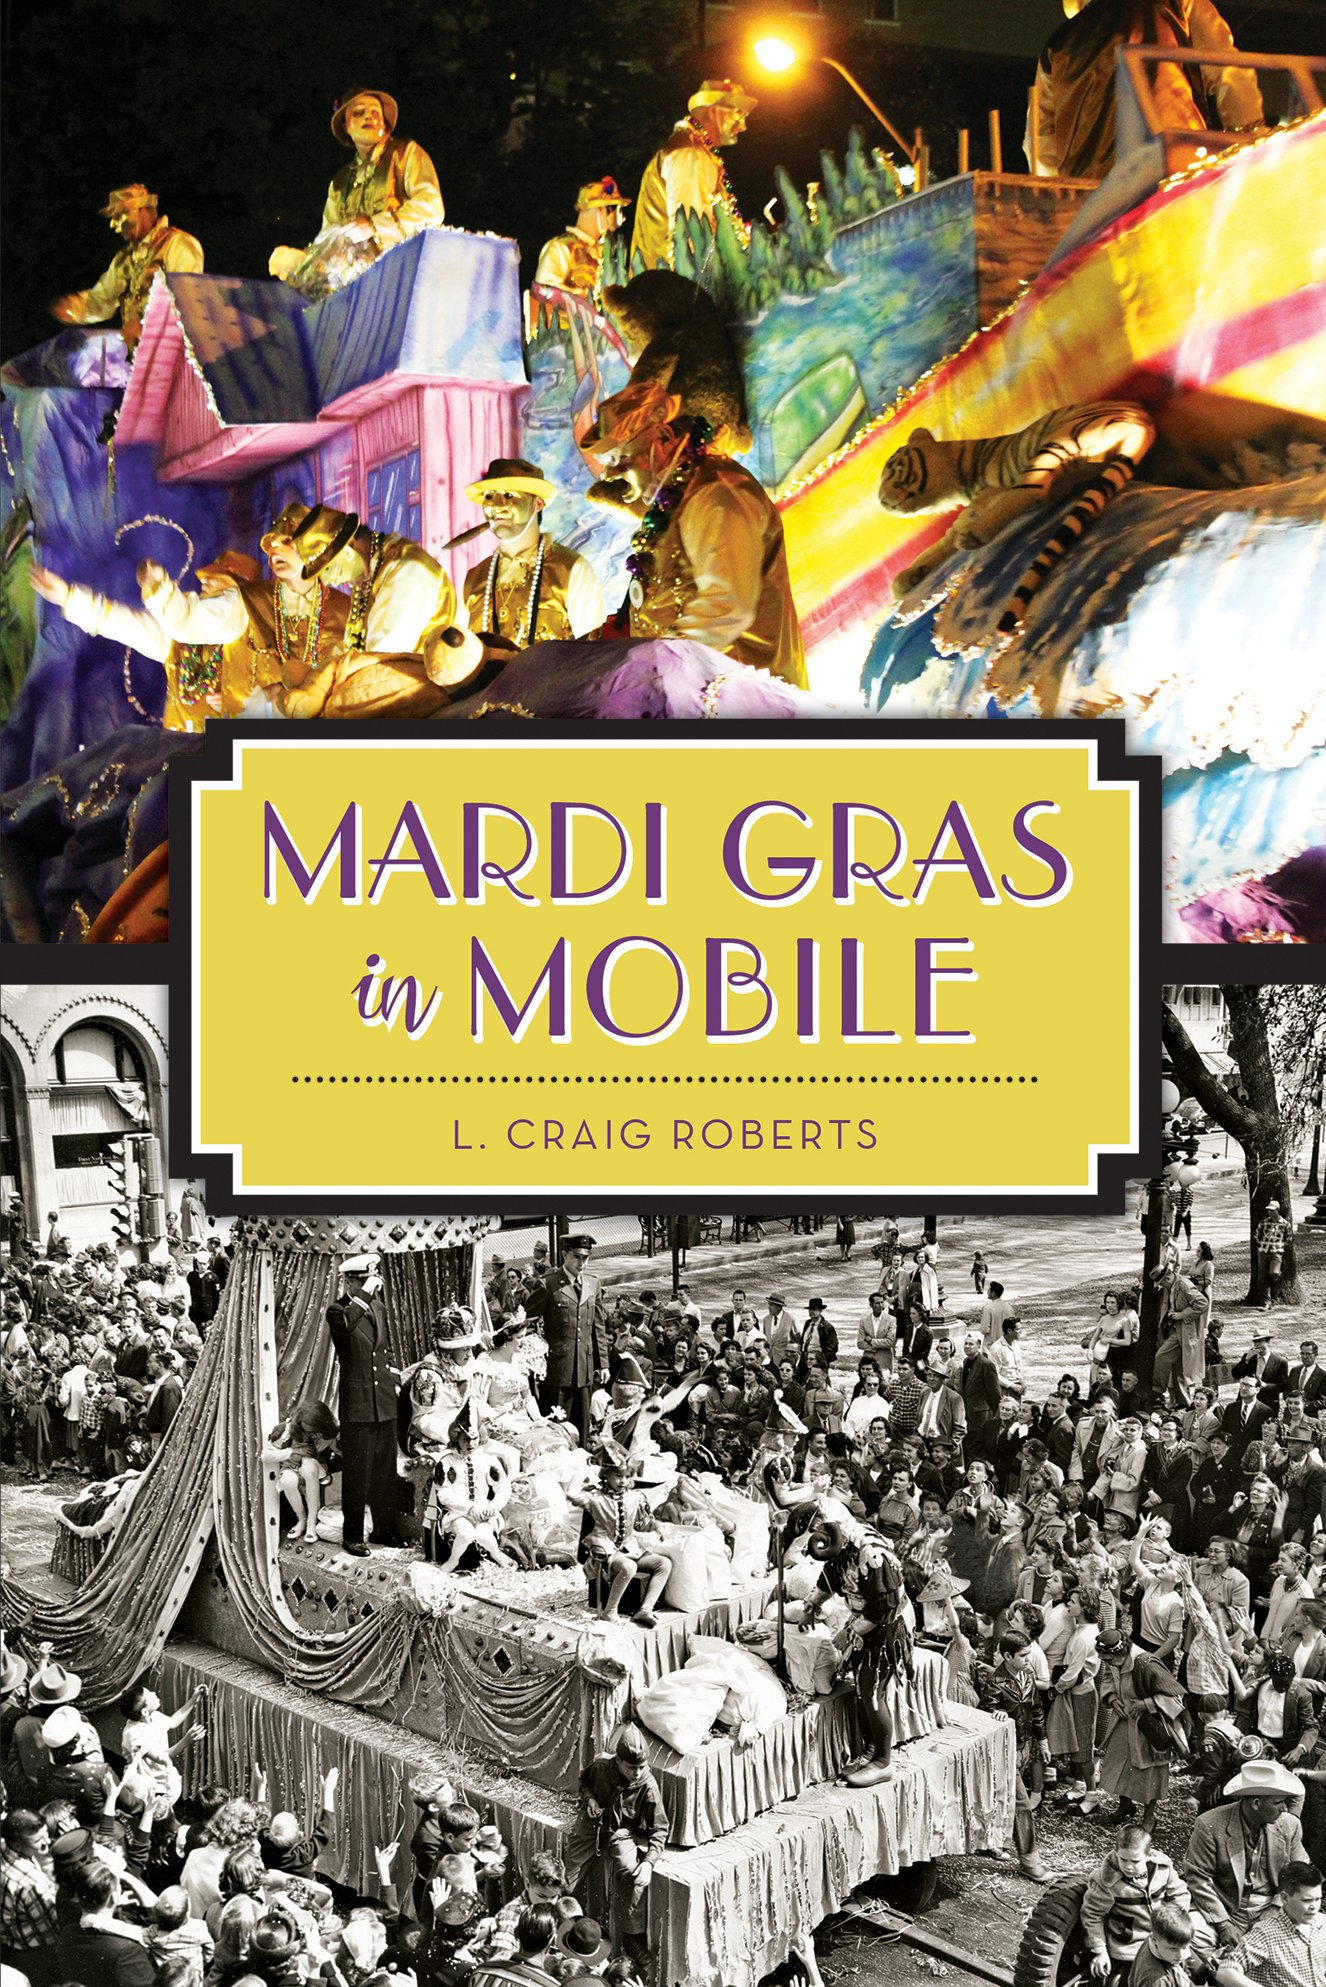 Image result for mardi gras in mobile l. craig roberts